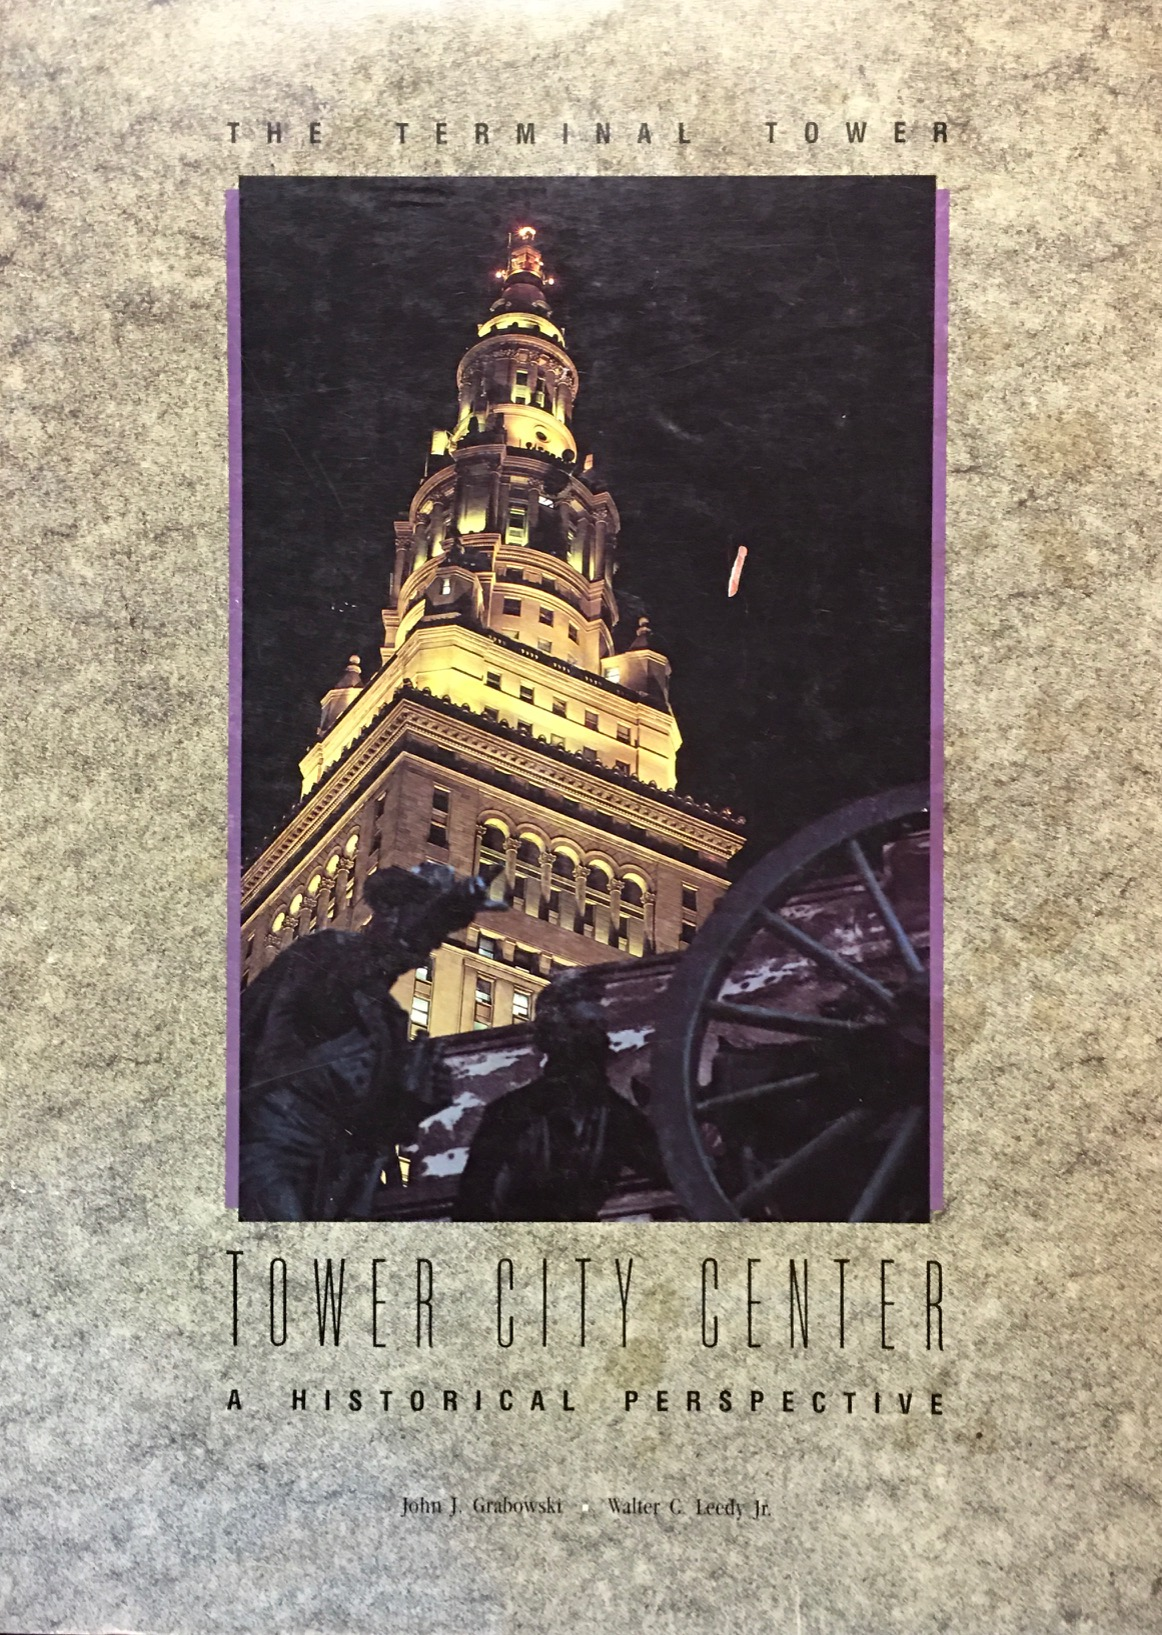 Image for The Terminal Tower, Tower City Center: A Historical Perspective (The Western Reserve Historical Society publication No. 177)